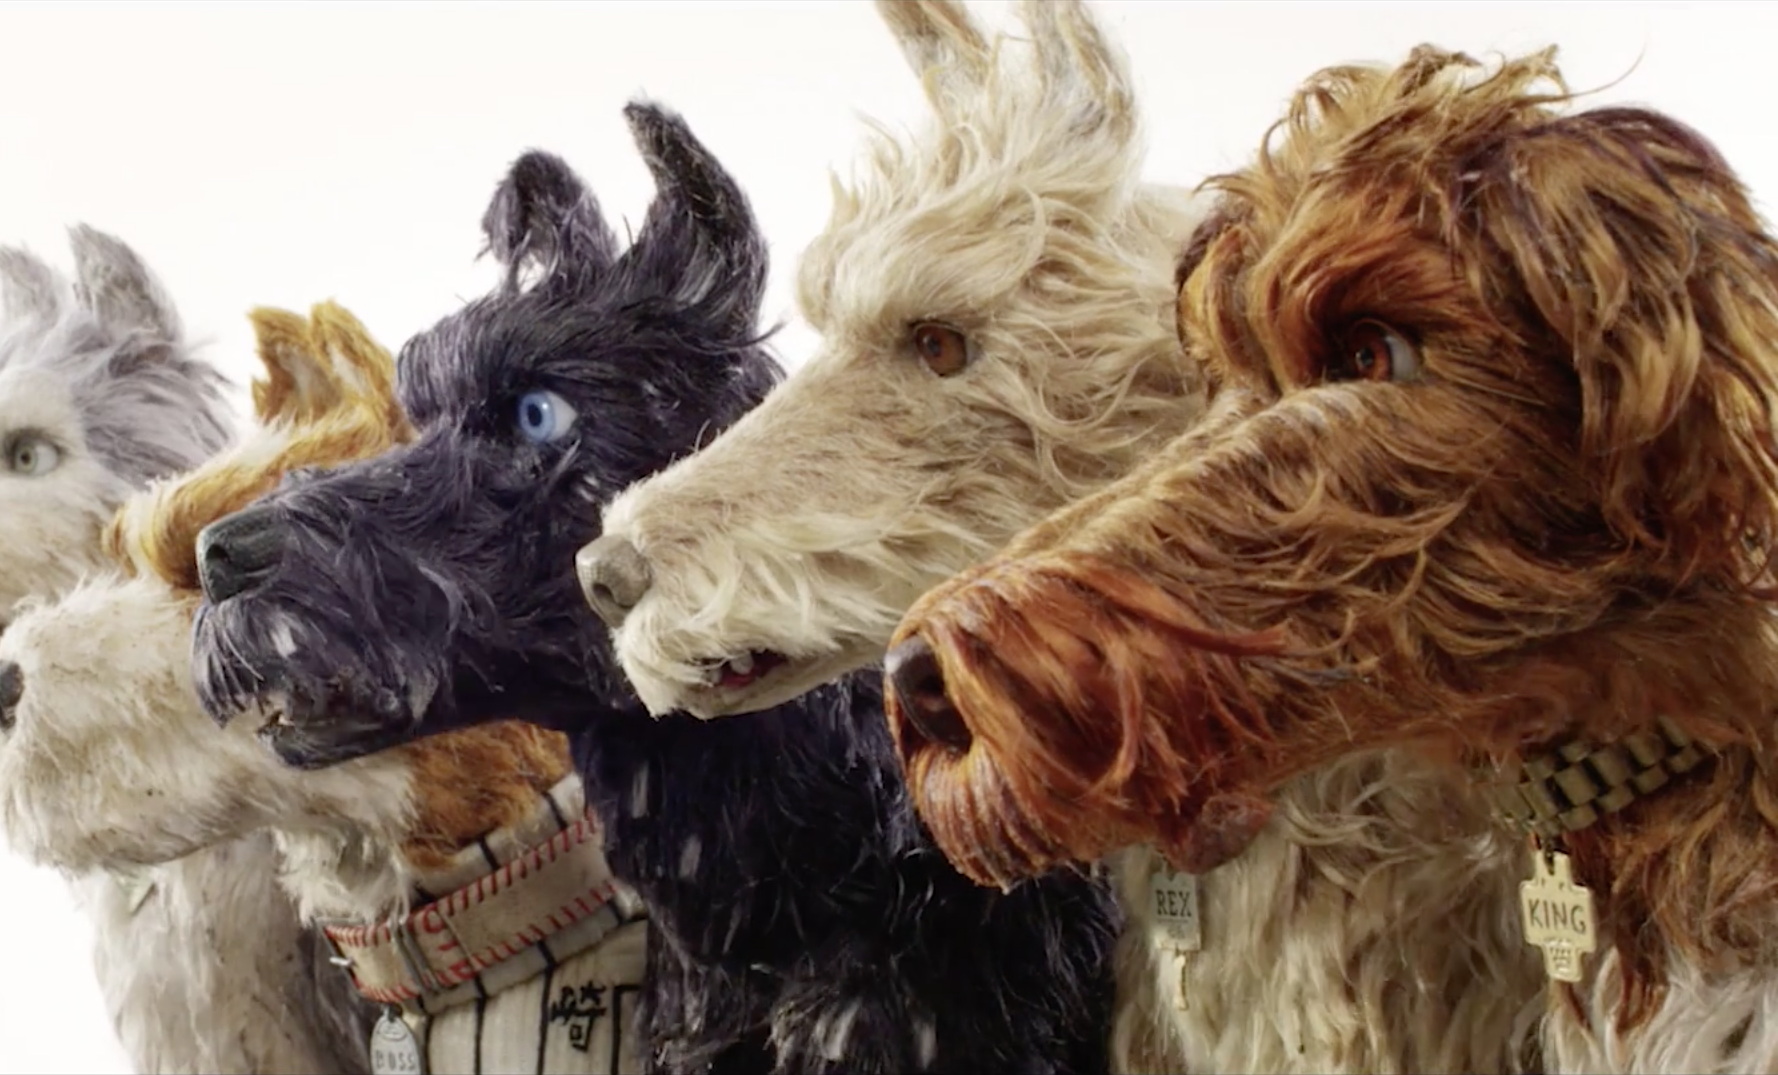 'Isle of Dogs': Stream Alexandre Desplat's Score to Wes Anderson's Stop-Motion Film